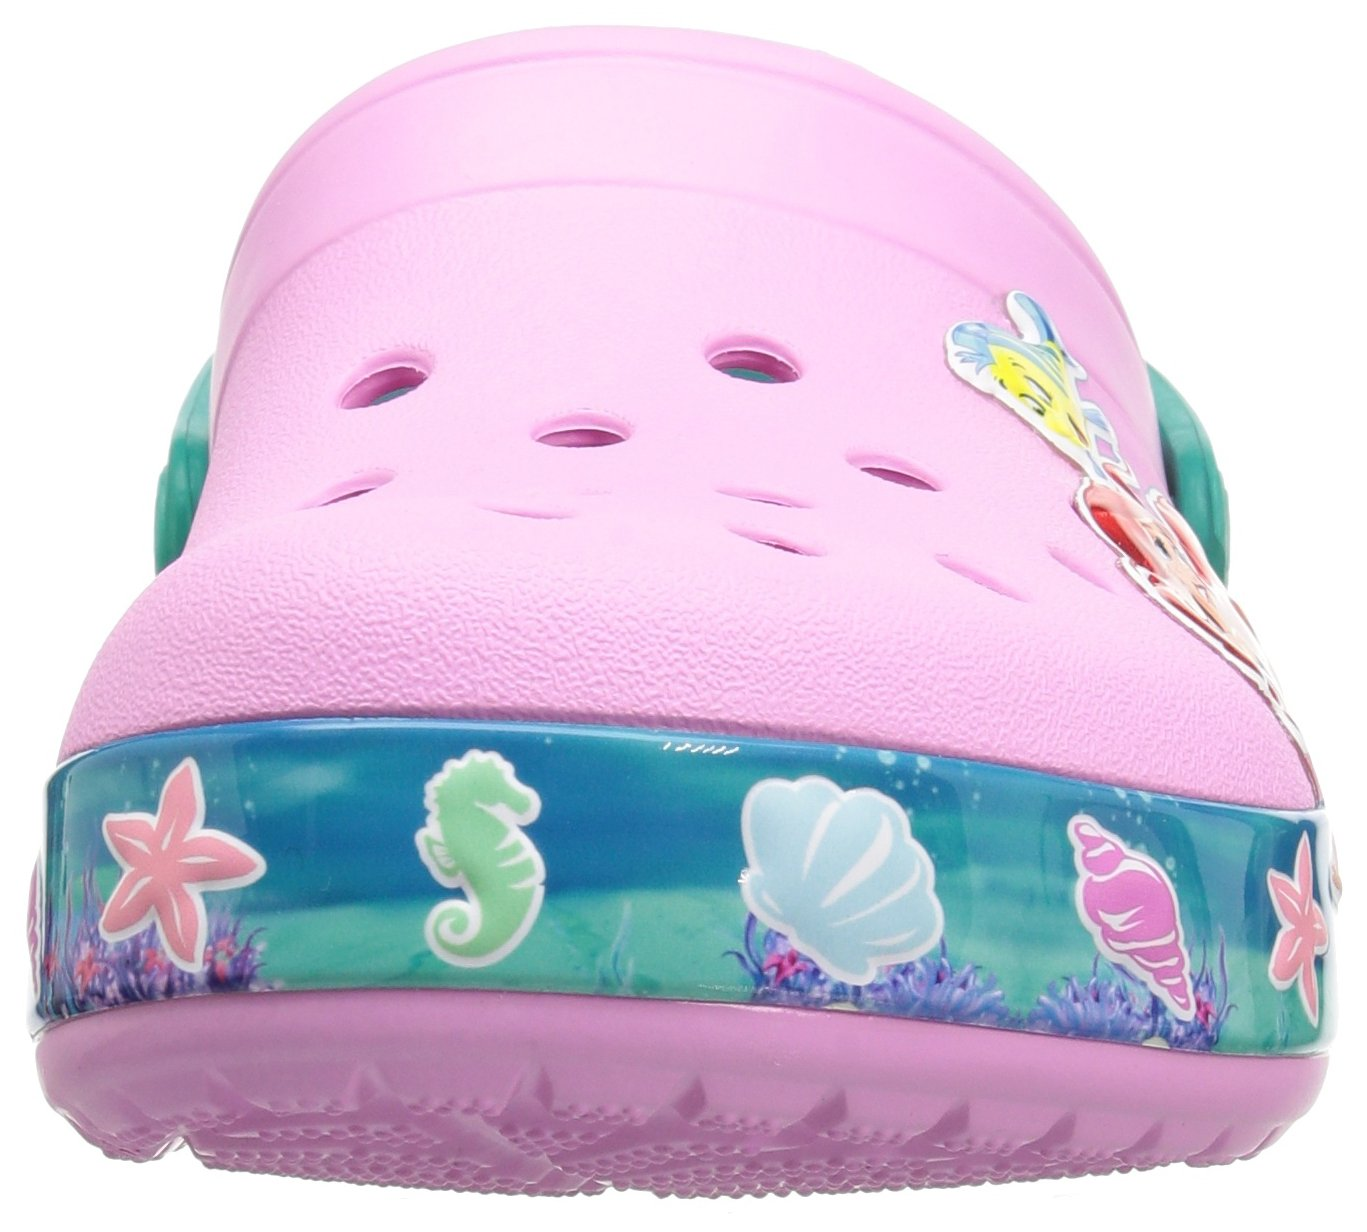 Crocs Unisex-Kids  CB Princess Ariel Clog K , carnation , C10 M US Toddler by Crocs (Image #4)